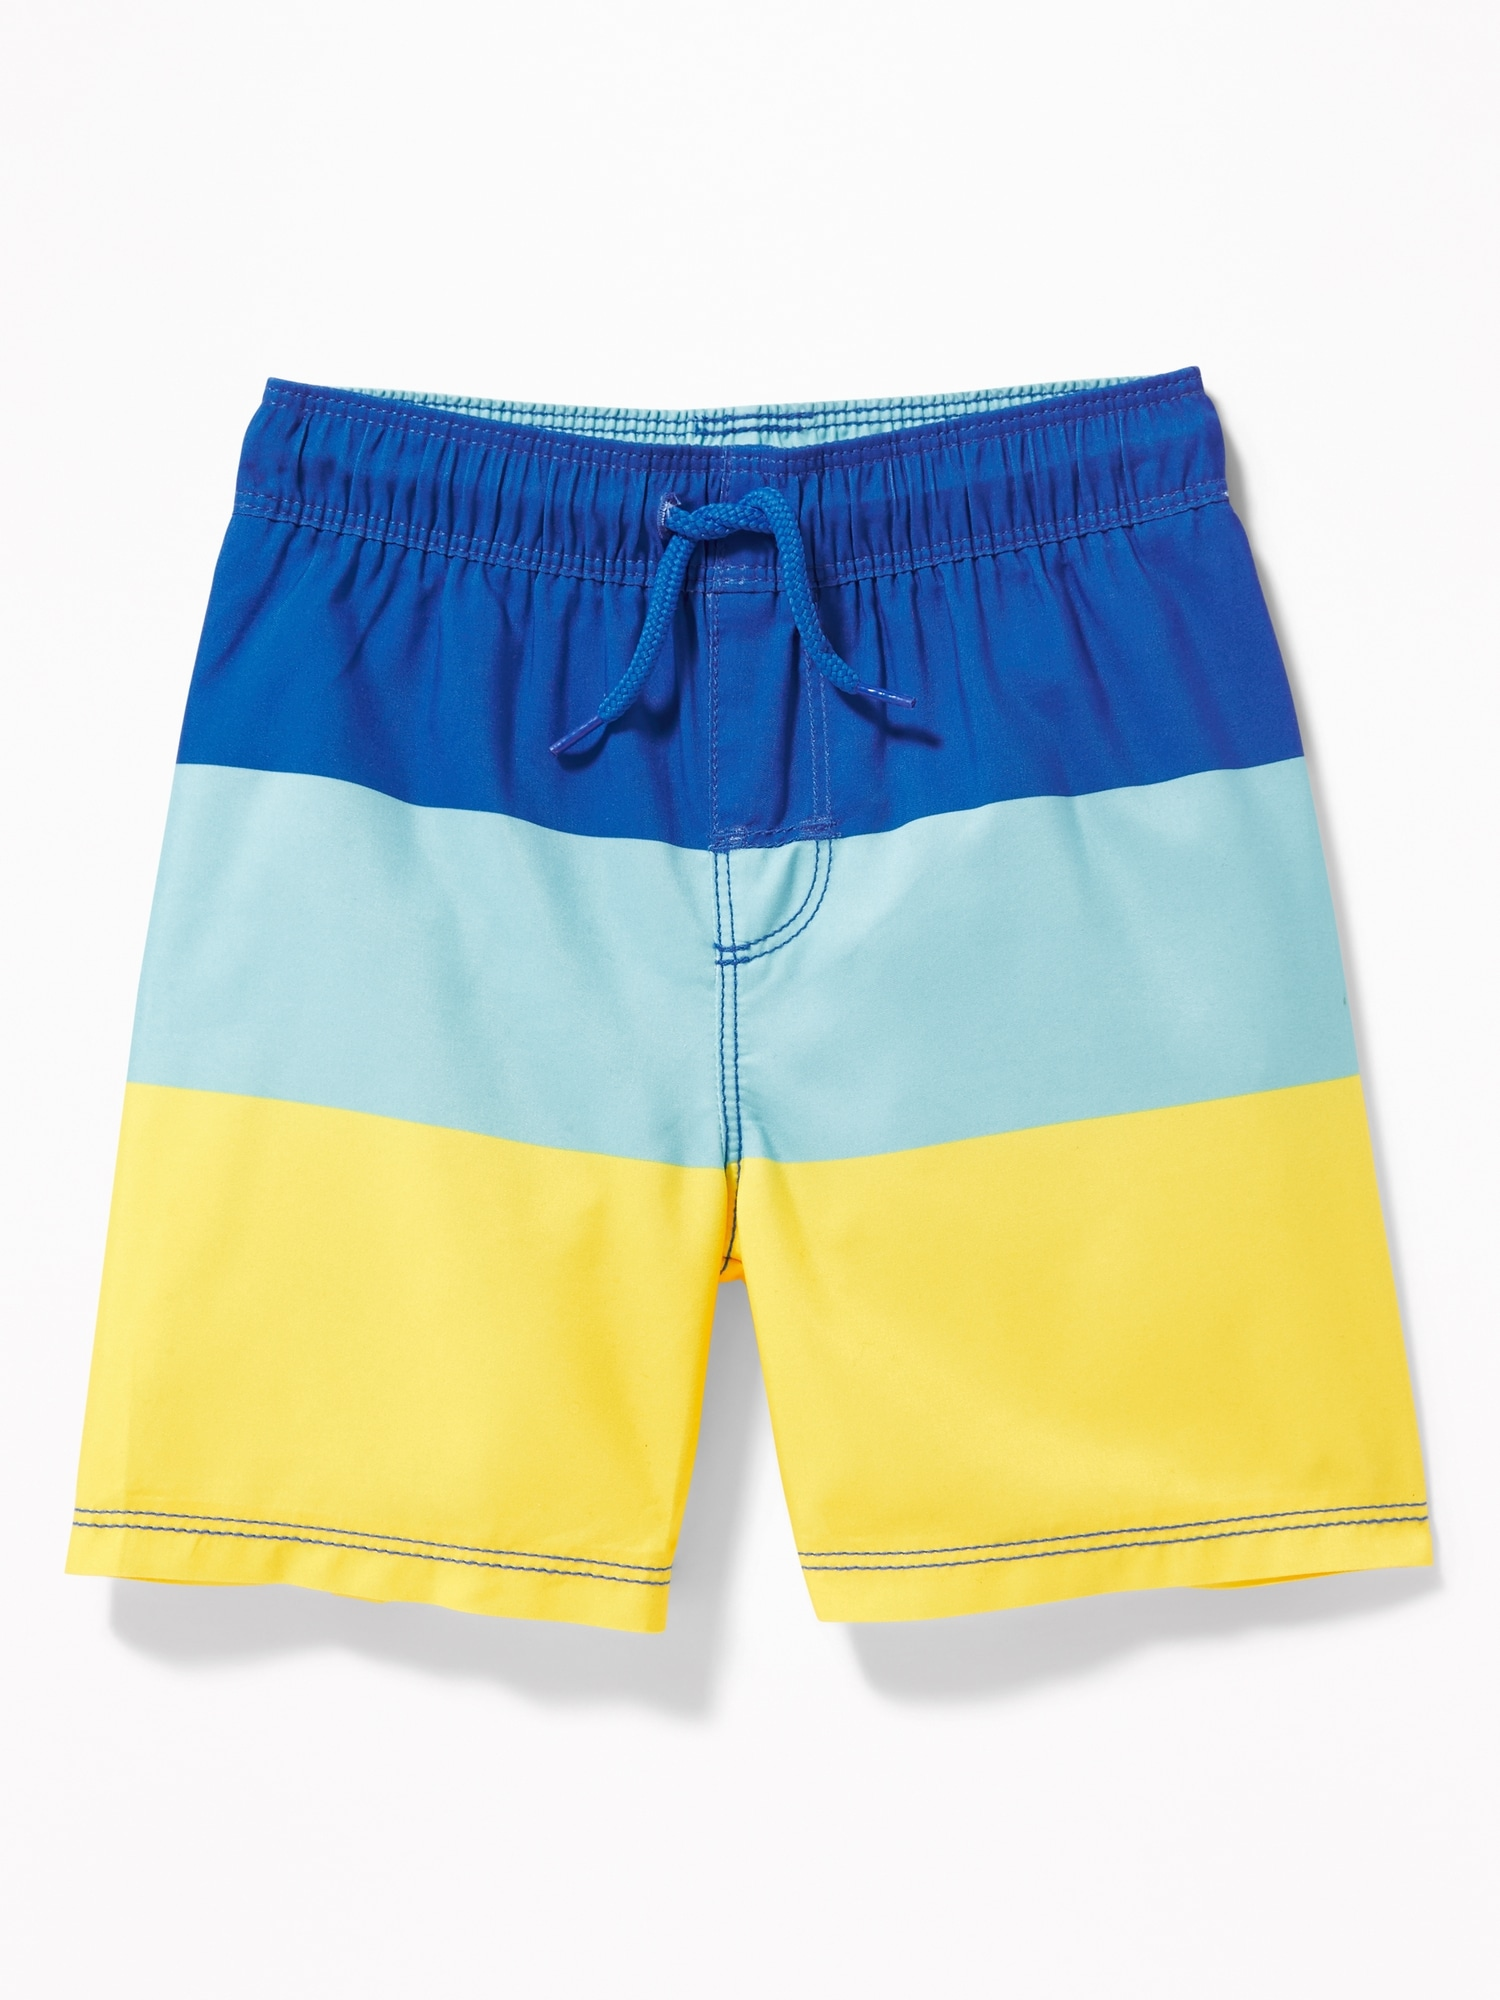 1f0959e0c9 Functional Drawstring Color-Blocked Swim Trunks for Toddler Boys ...